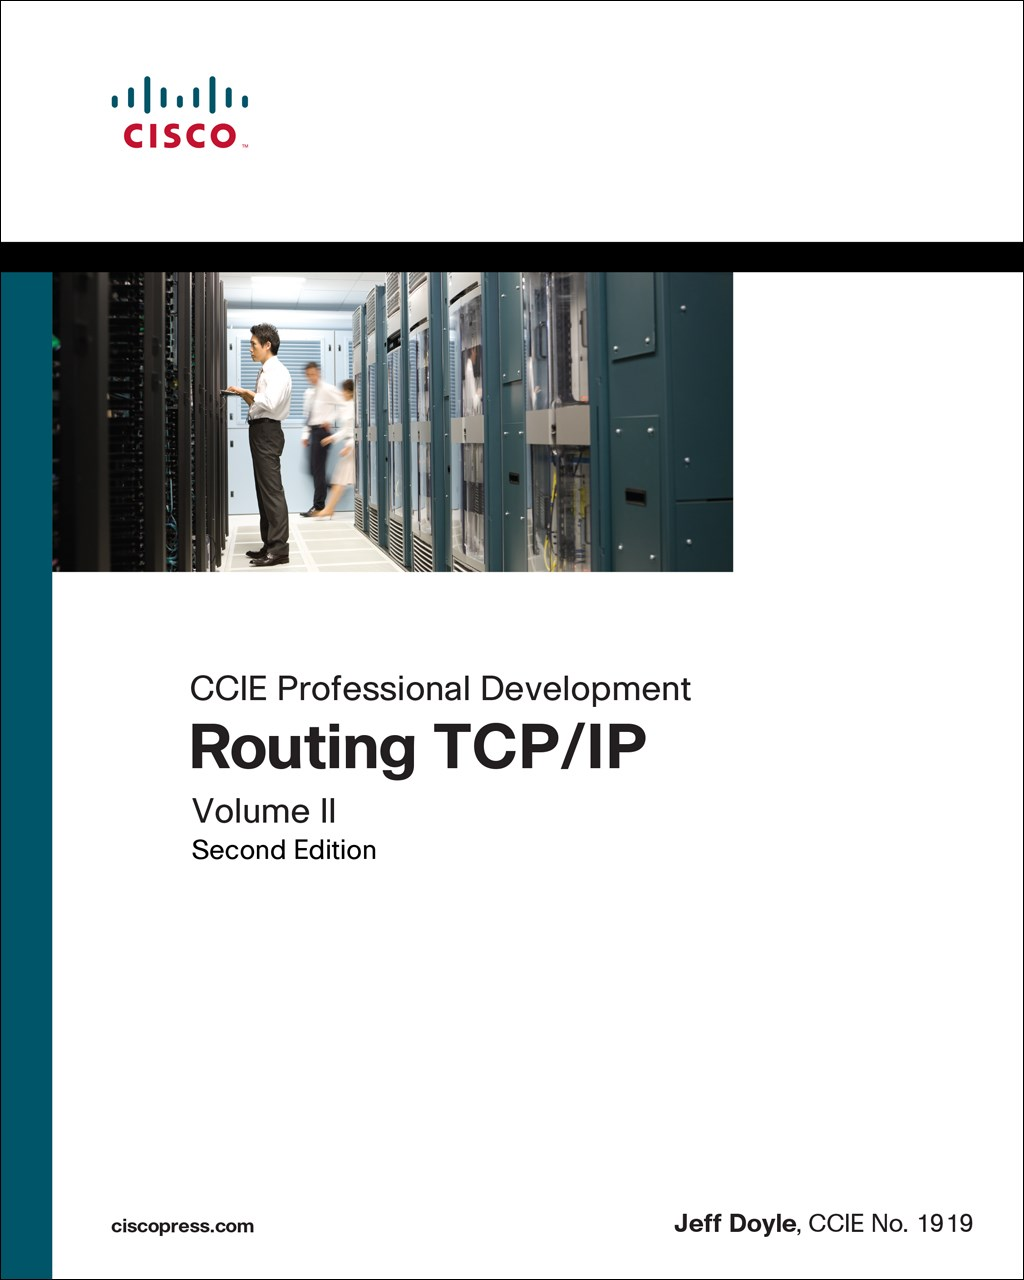 Routing TCP/IP, Volume II: CCIE Professional Development: CCIE Professional Development, 2nd Edition